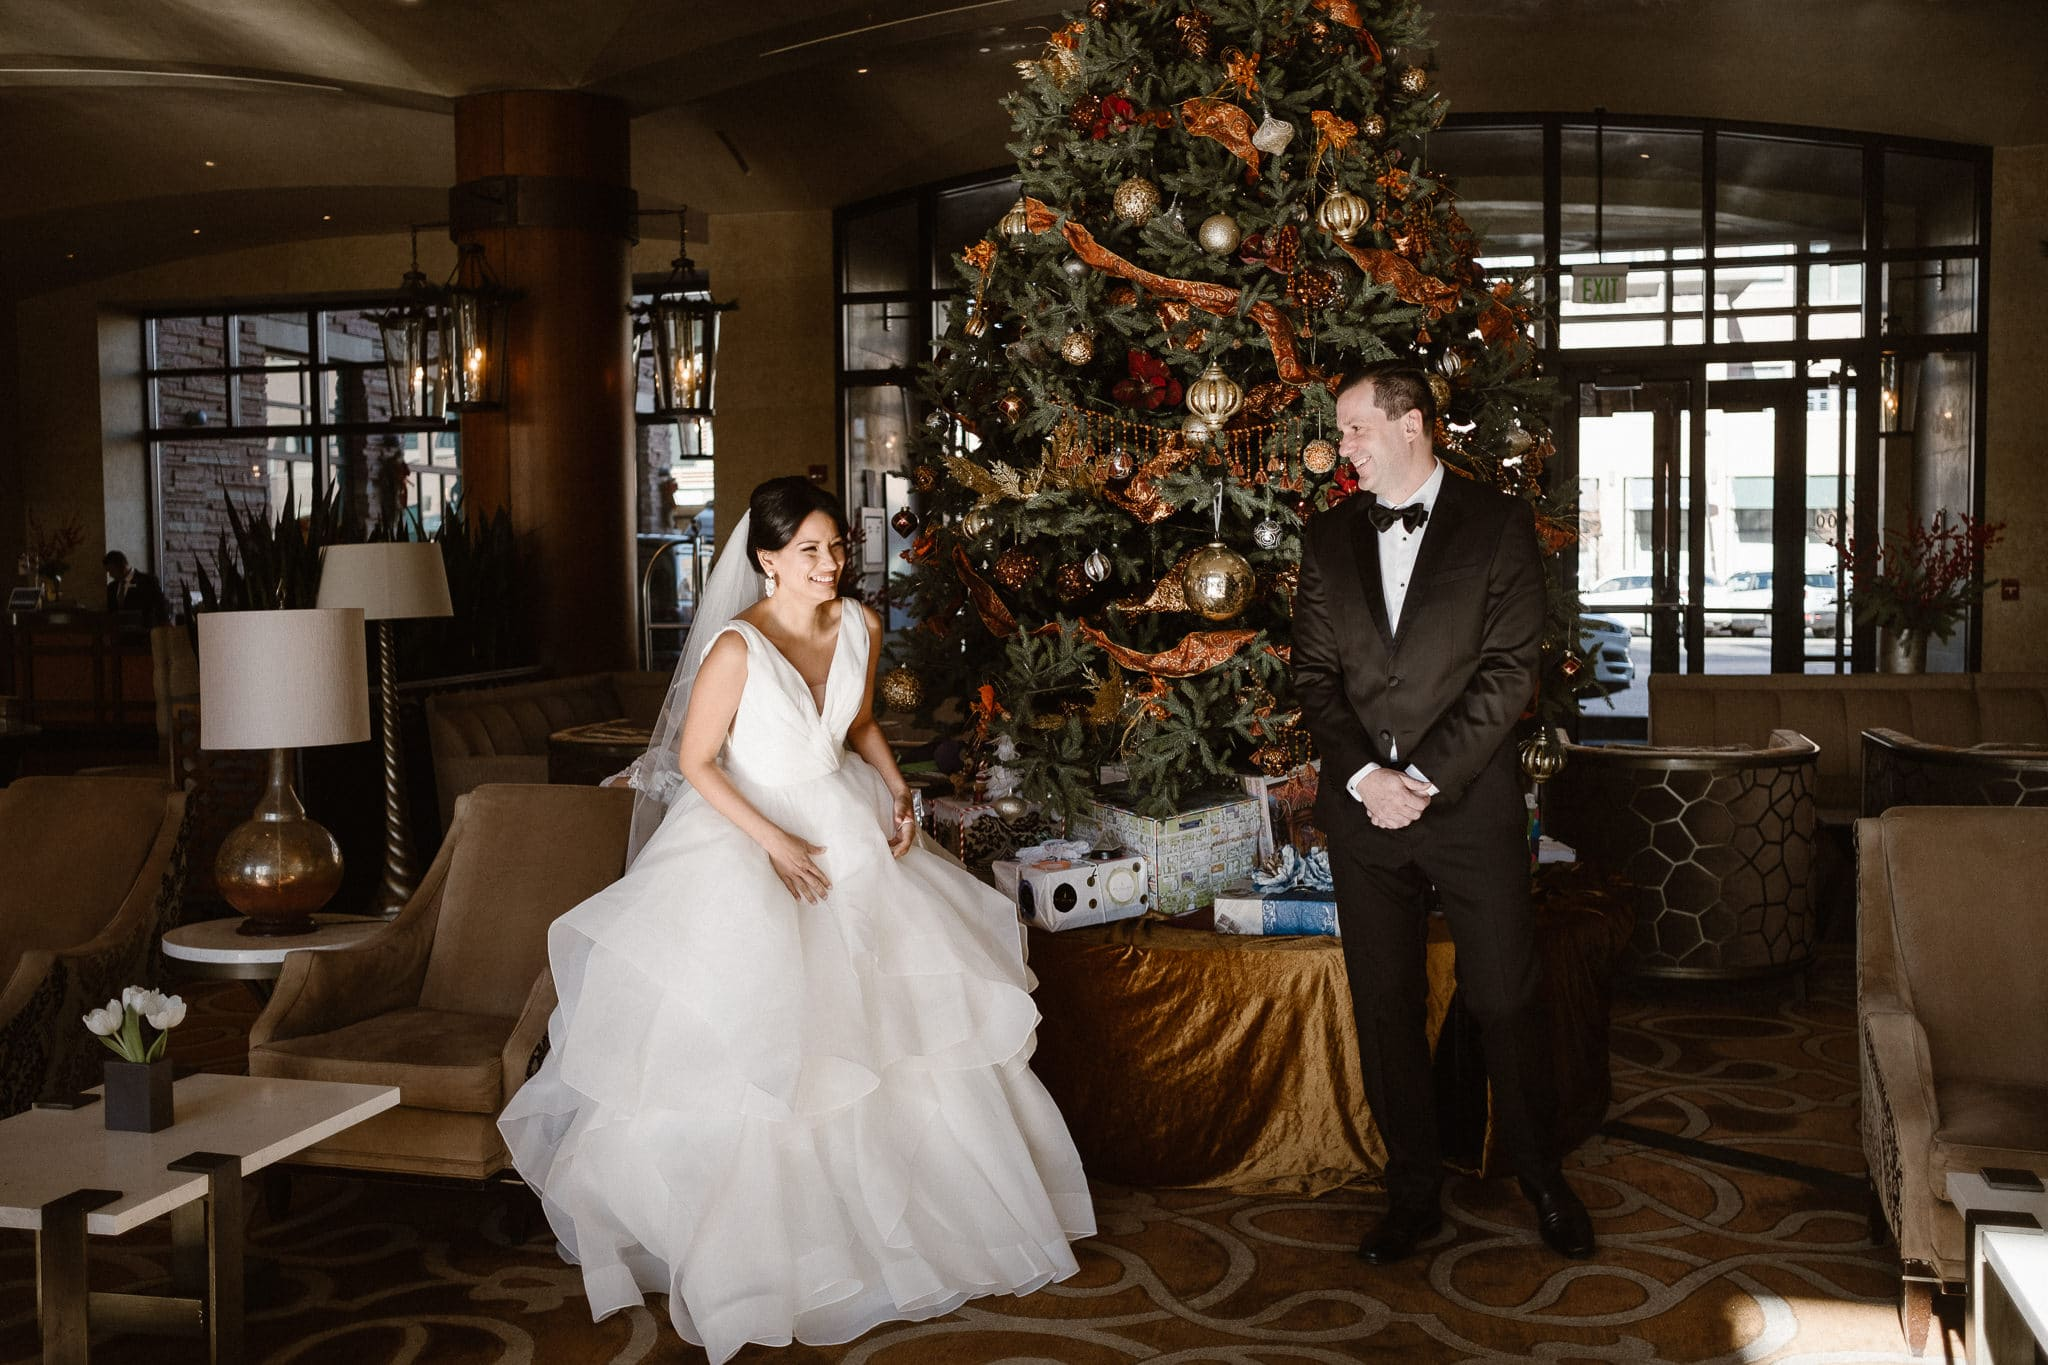 Bride and groom first look in front of giant Christmas tree at The St Julien Hotel & Spa in Boulder, St Julien wedding photographer